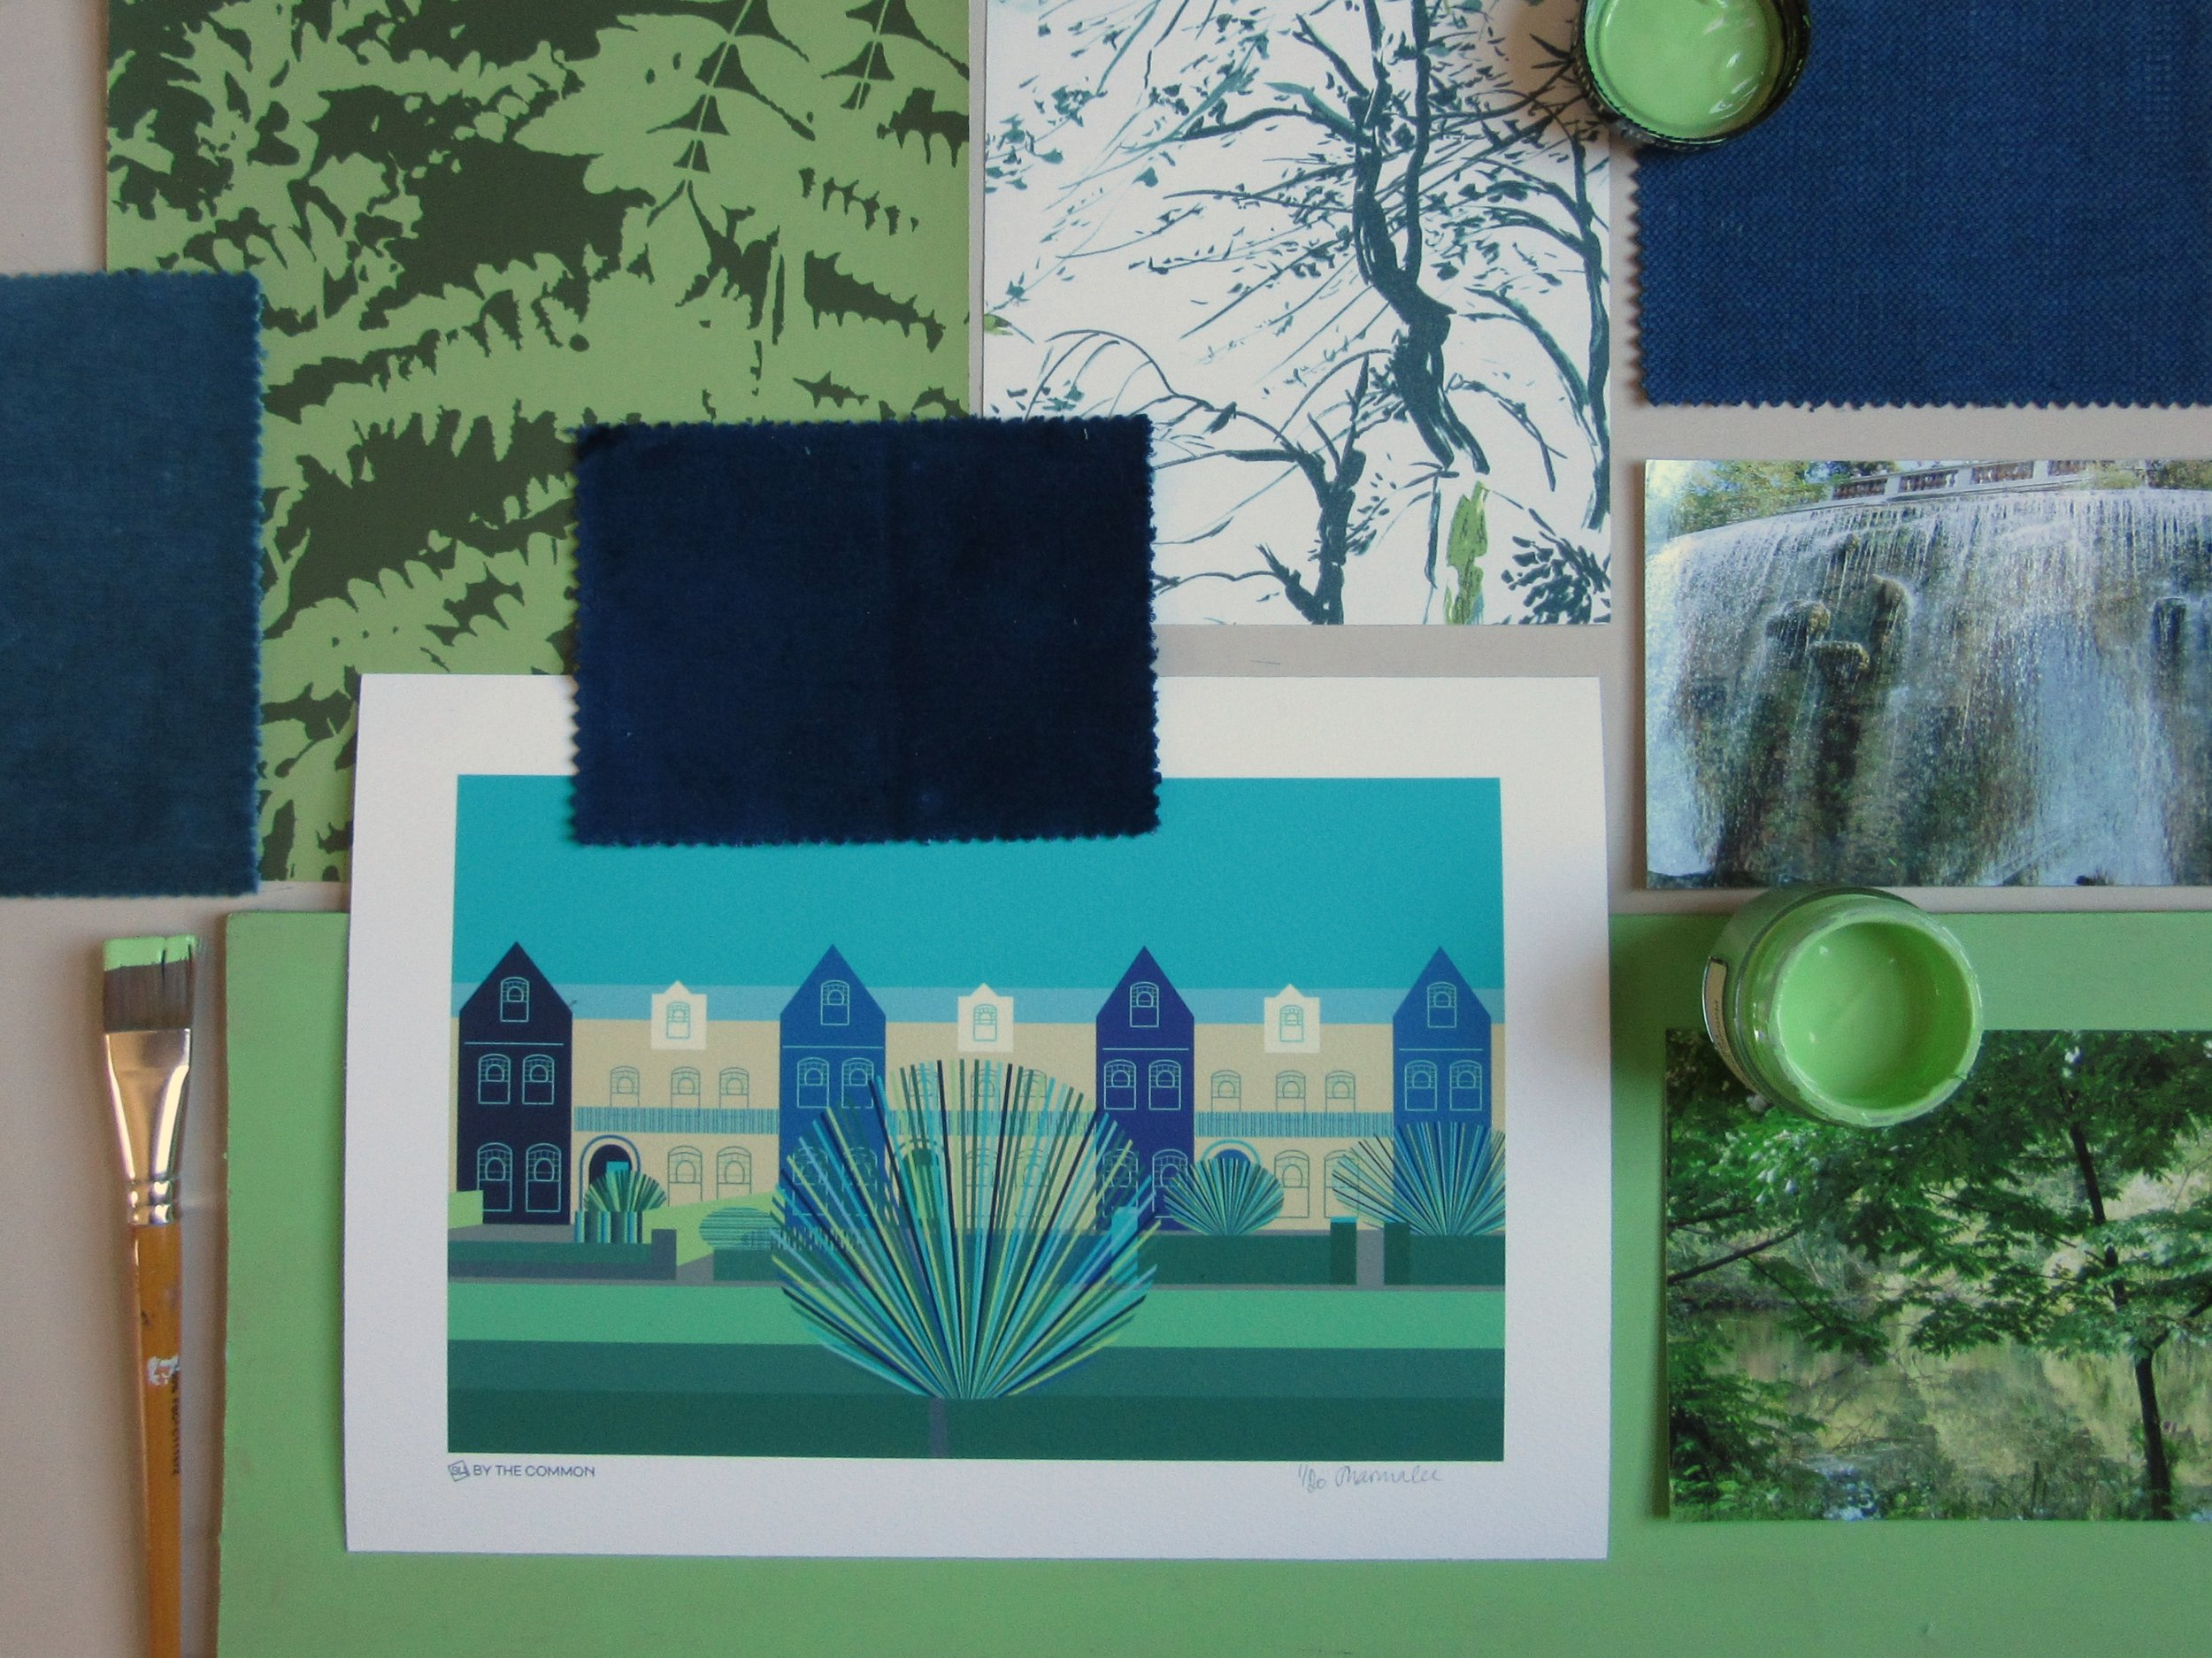 Forest - Inspired by Little Greene's Pthalo Green. Deep moody greens and blues balanced by a splash of bright green and warm stone.